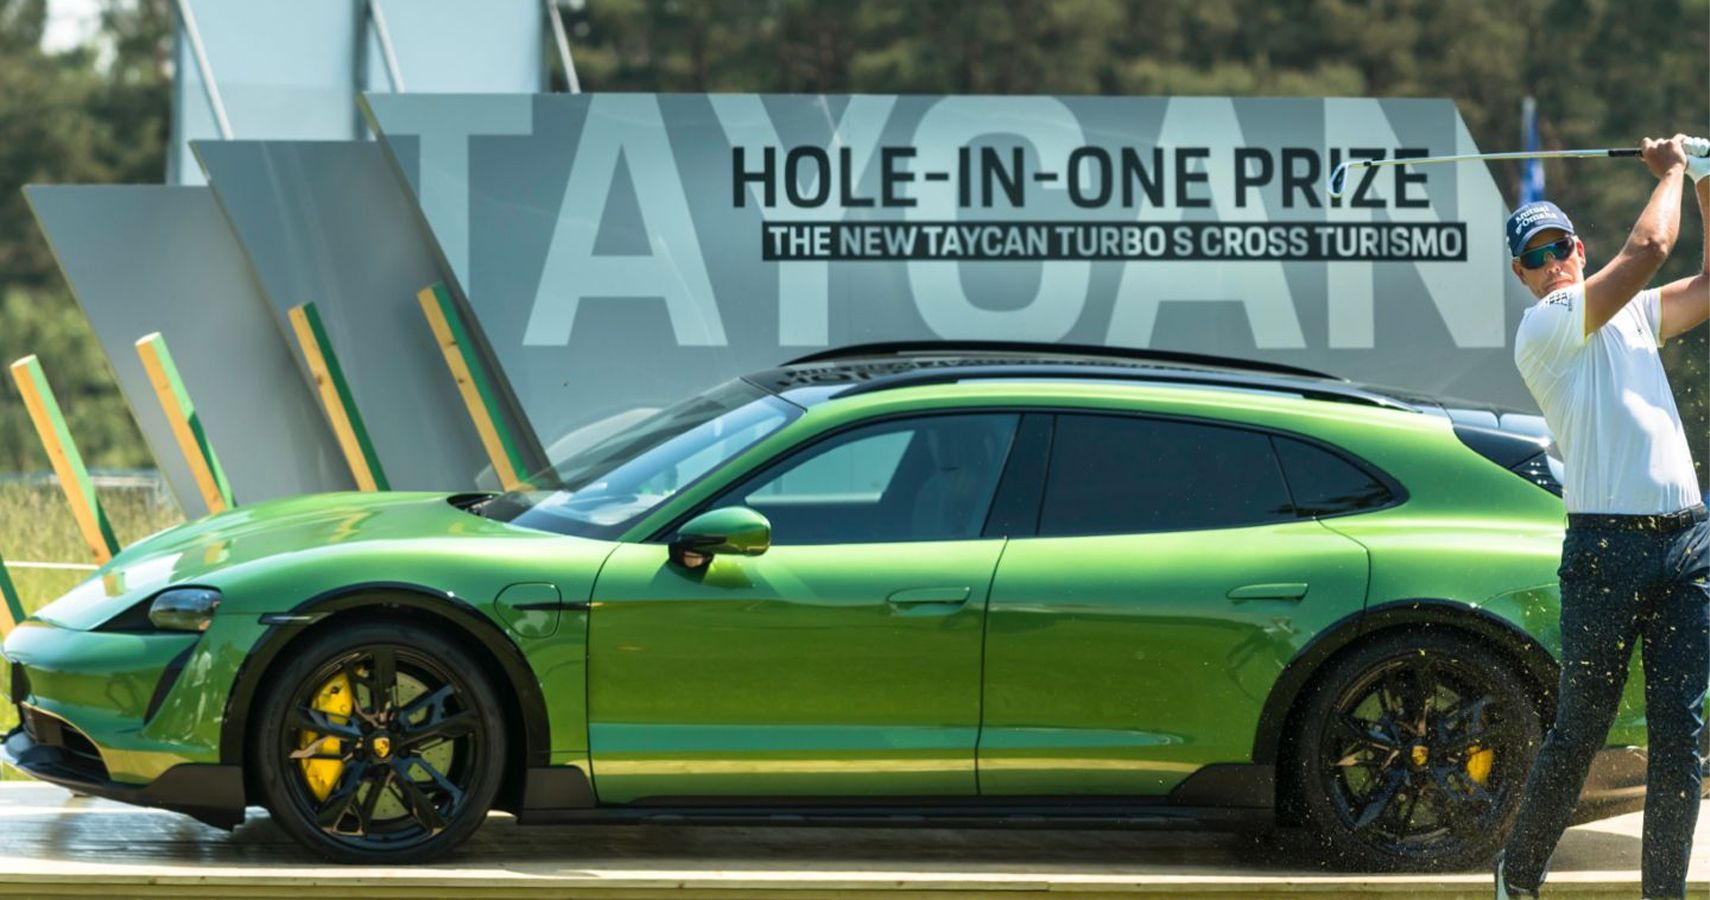 Typically Cool Swedish Golf Pro Henrik Stenson Gets Excited Taking The Porsche Taycan For A Spin